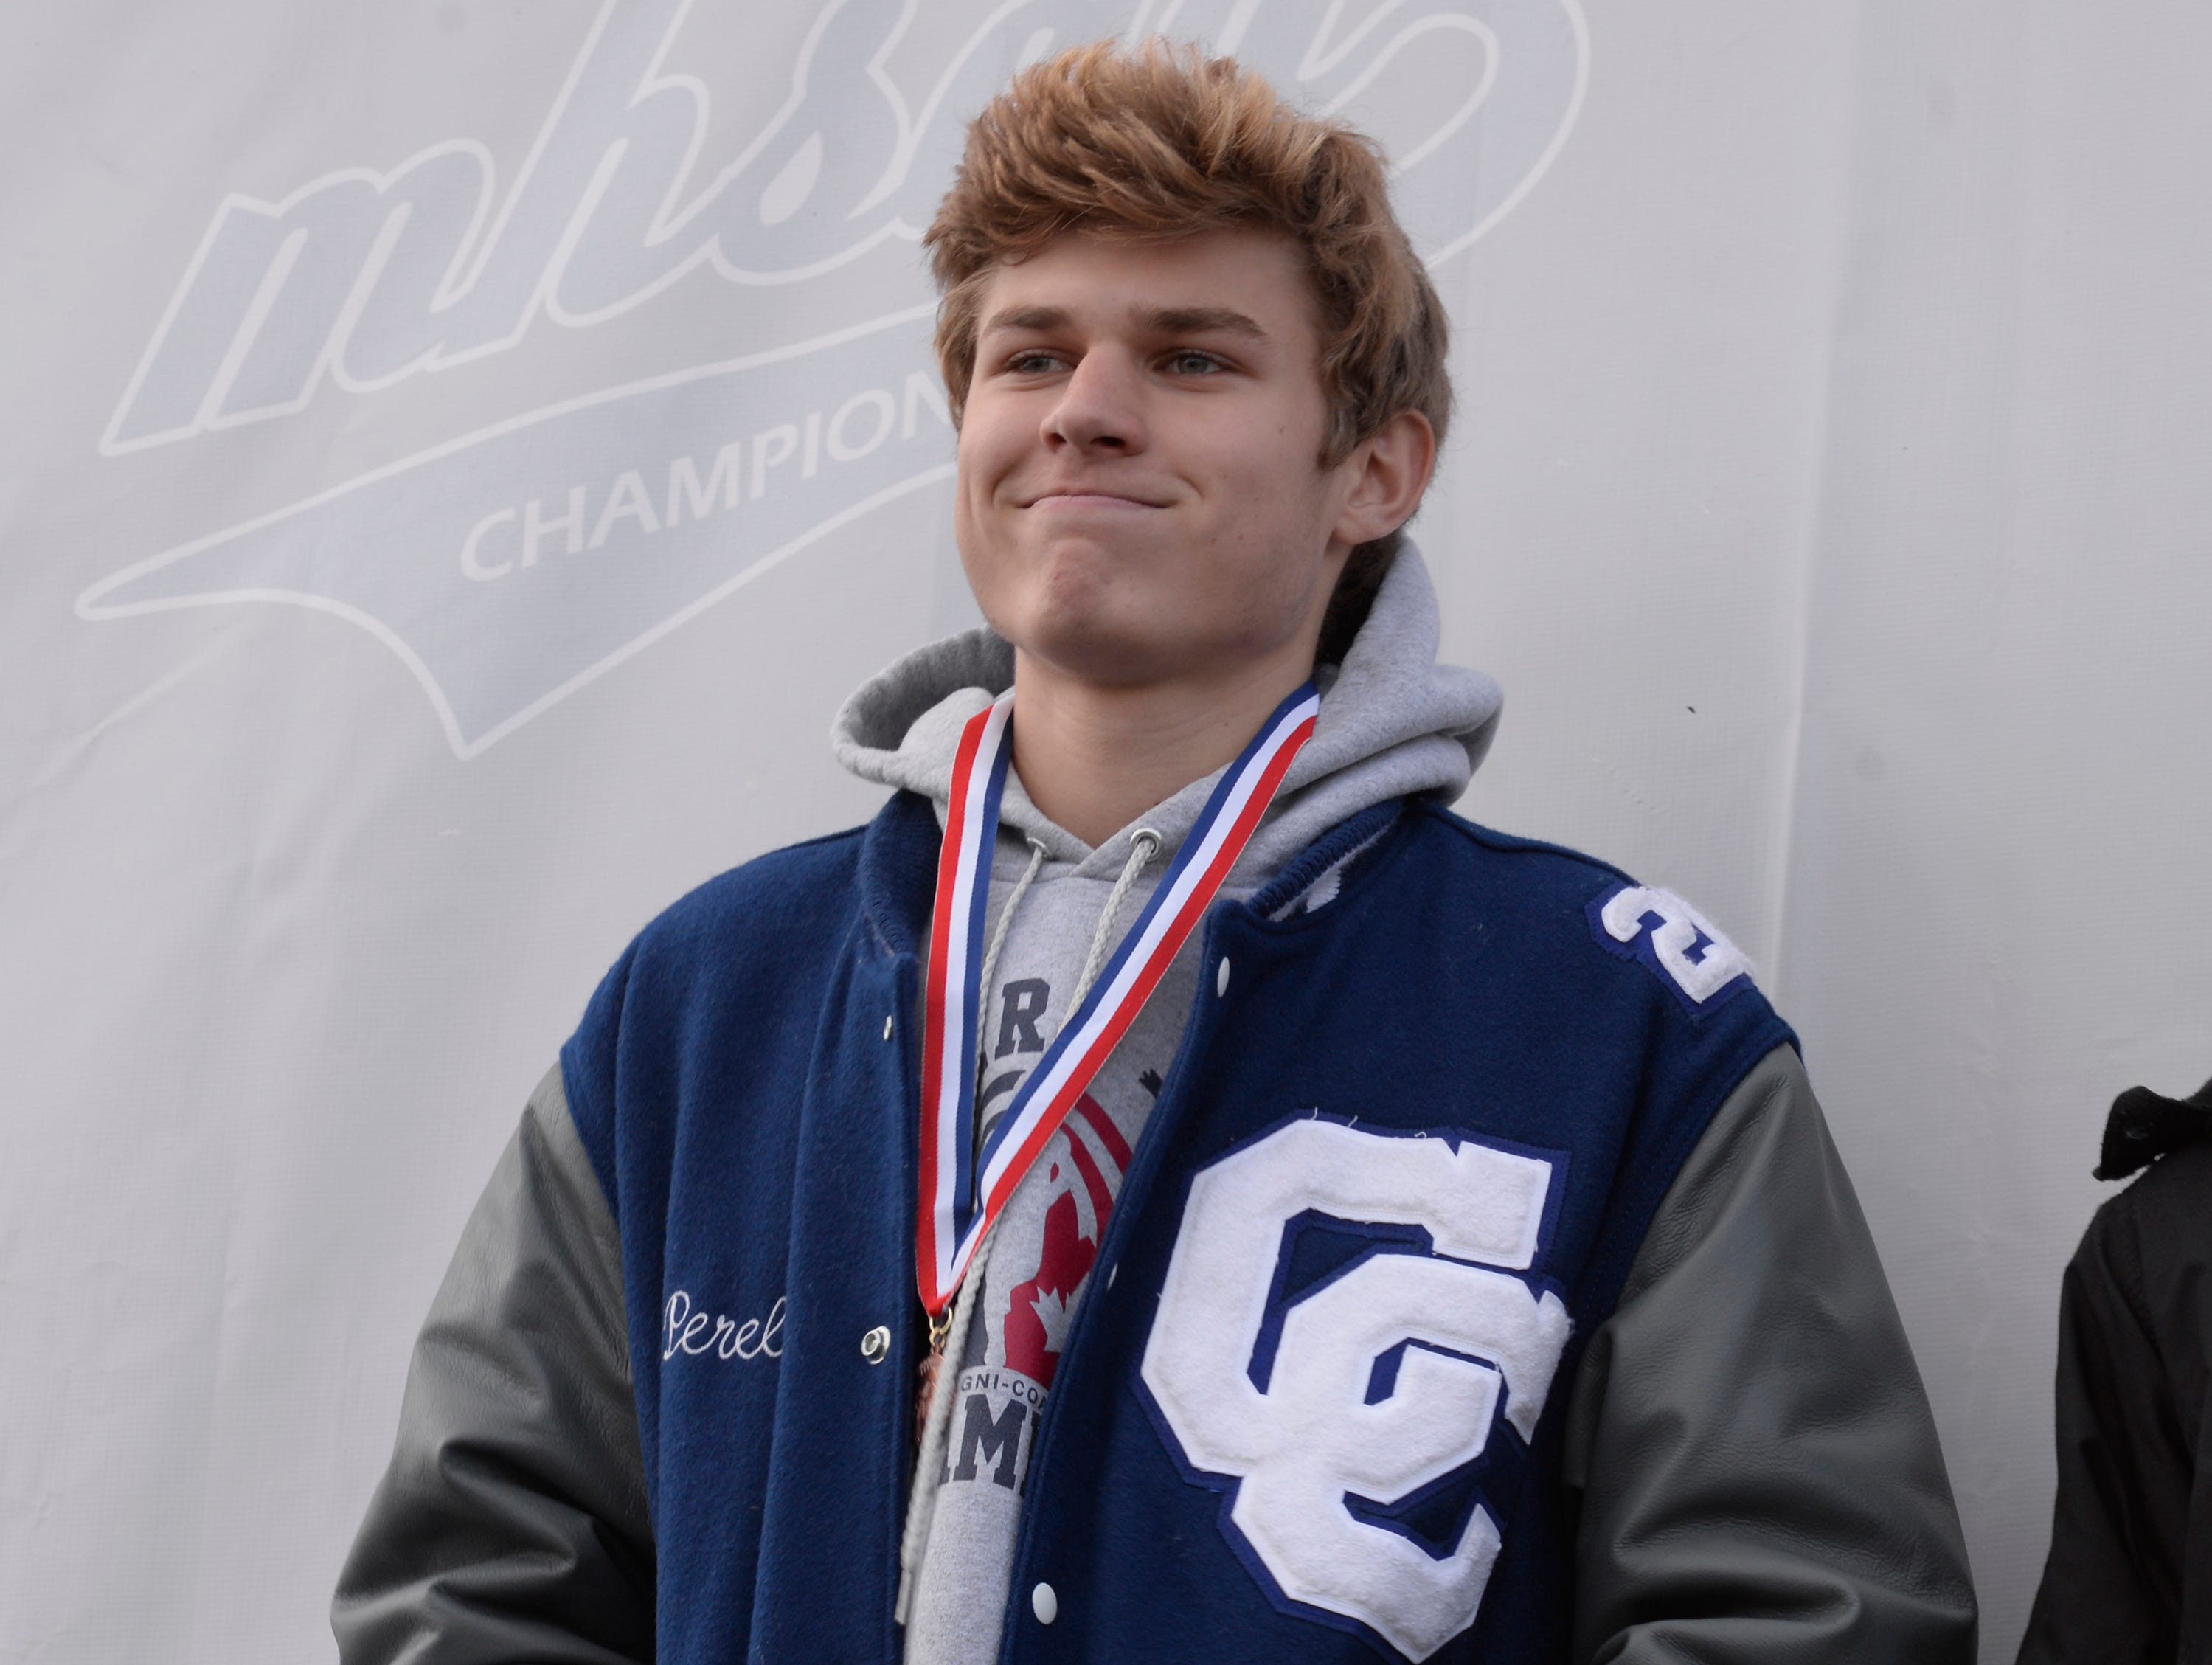 Detroit Catholic Central's Luke Perelli finished in20th place in the Division 1 2018 cross country finals at Michigan International Speedway.